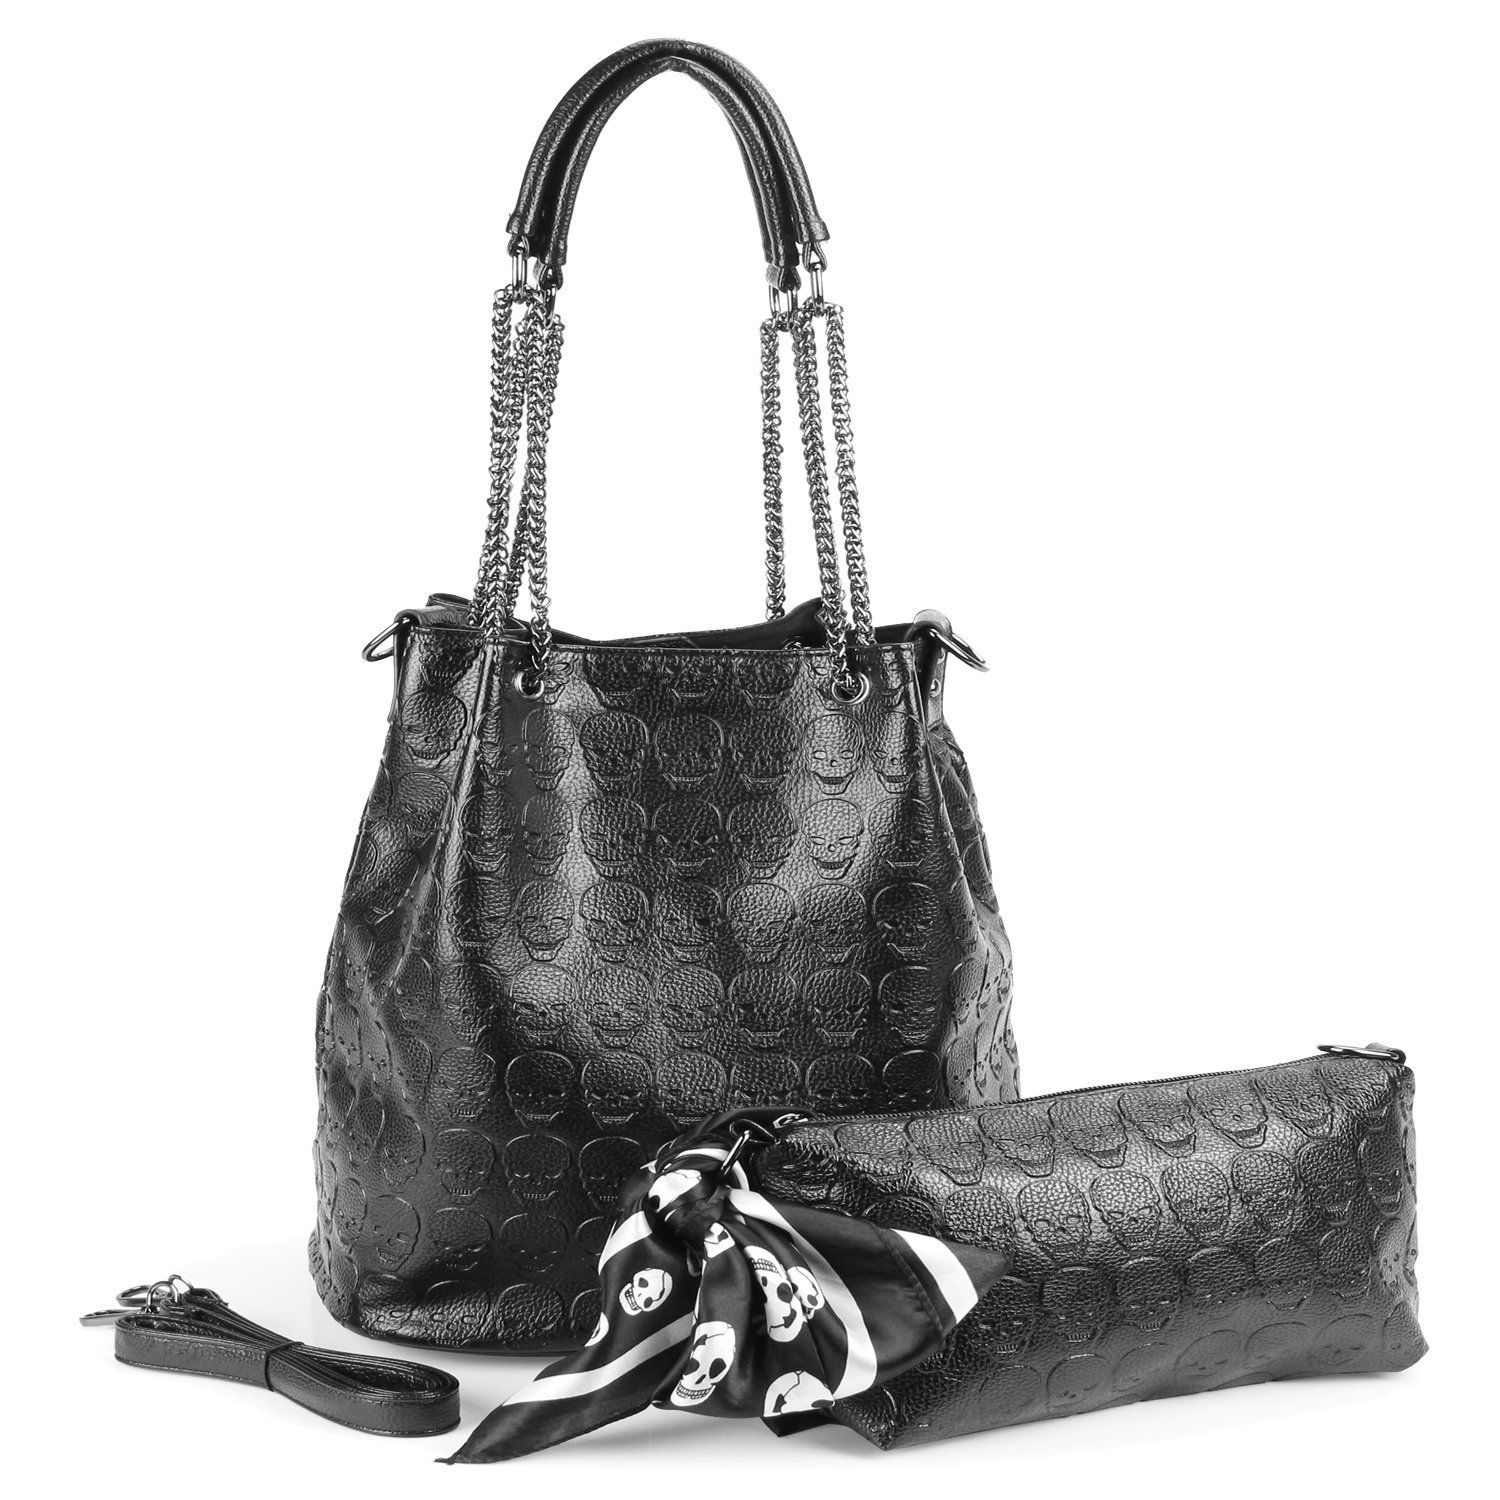 fee4391f6246 Amazon.com  Womens Skull Hobo Tote Bag Chain Shoulder Bag Gothic Handbag  Set  Shoes